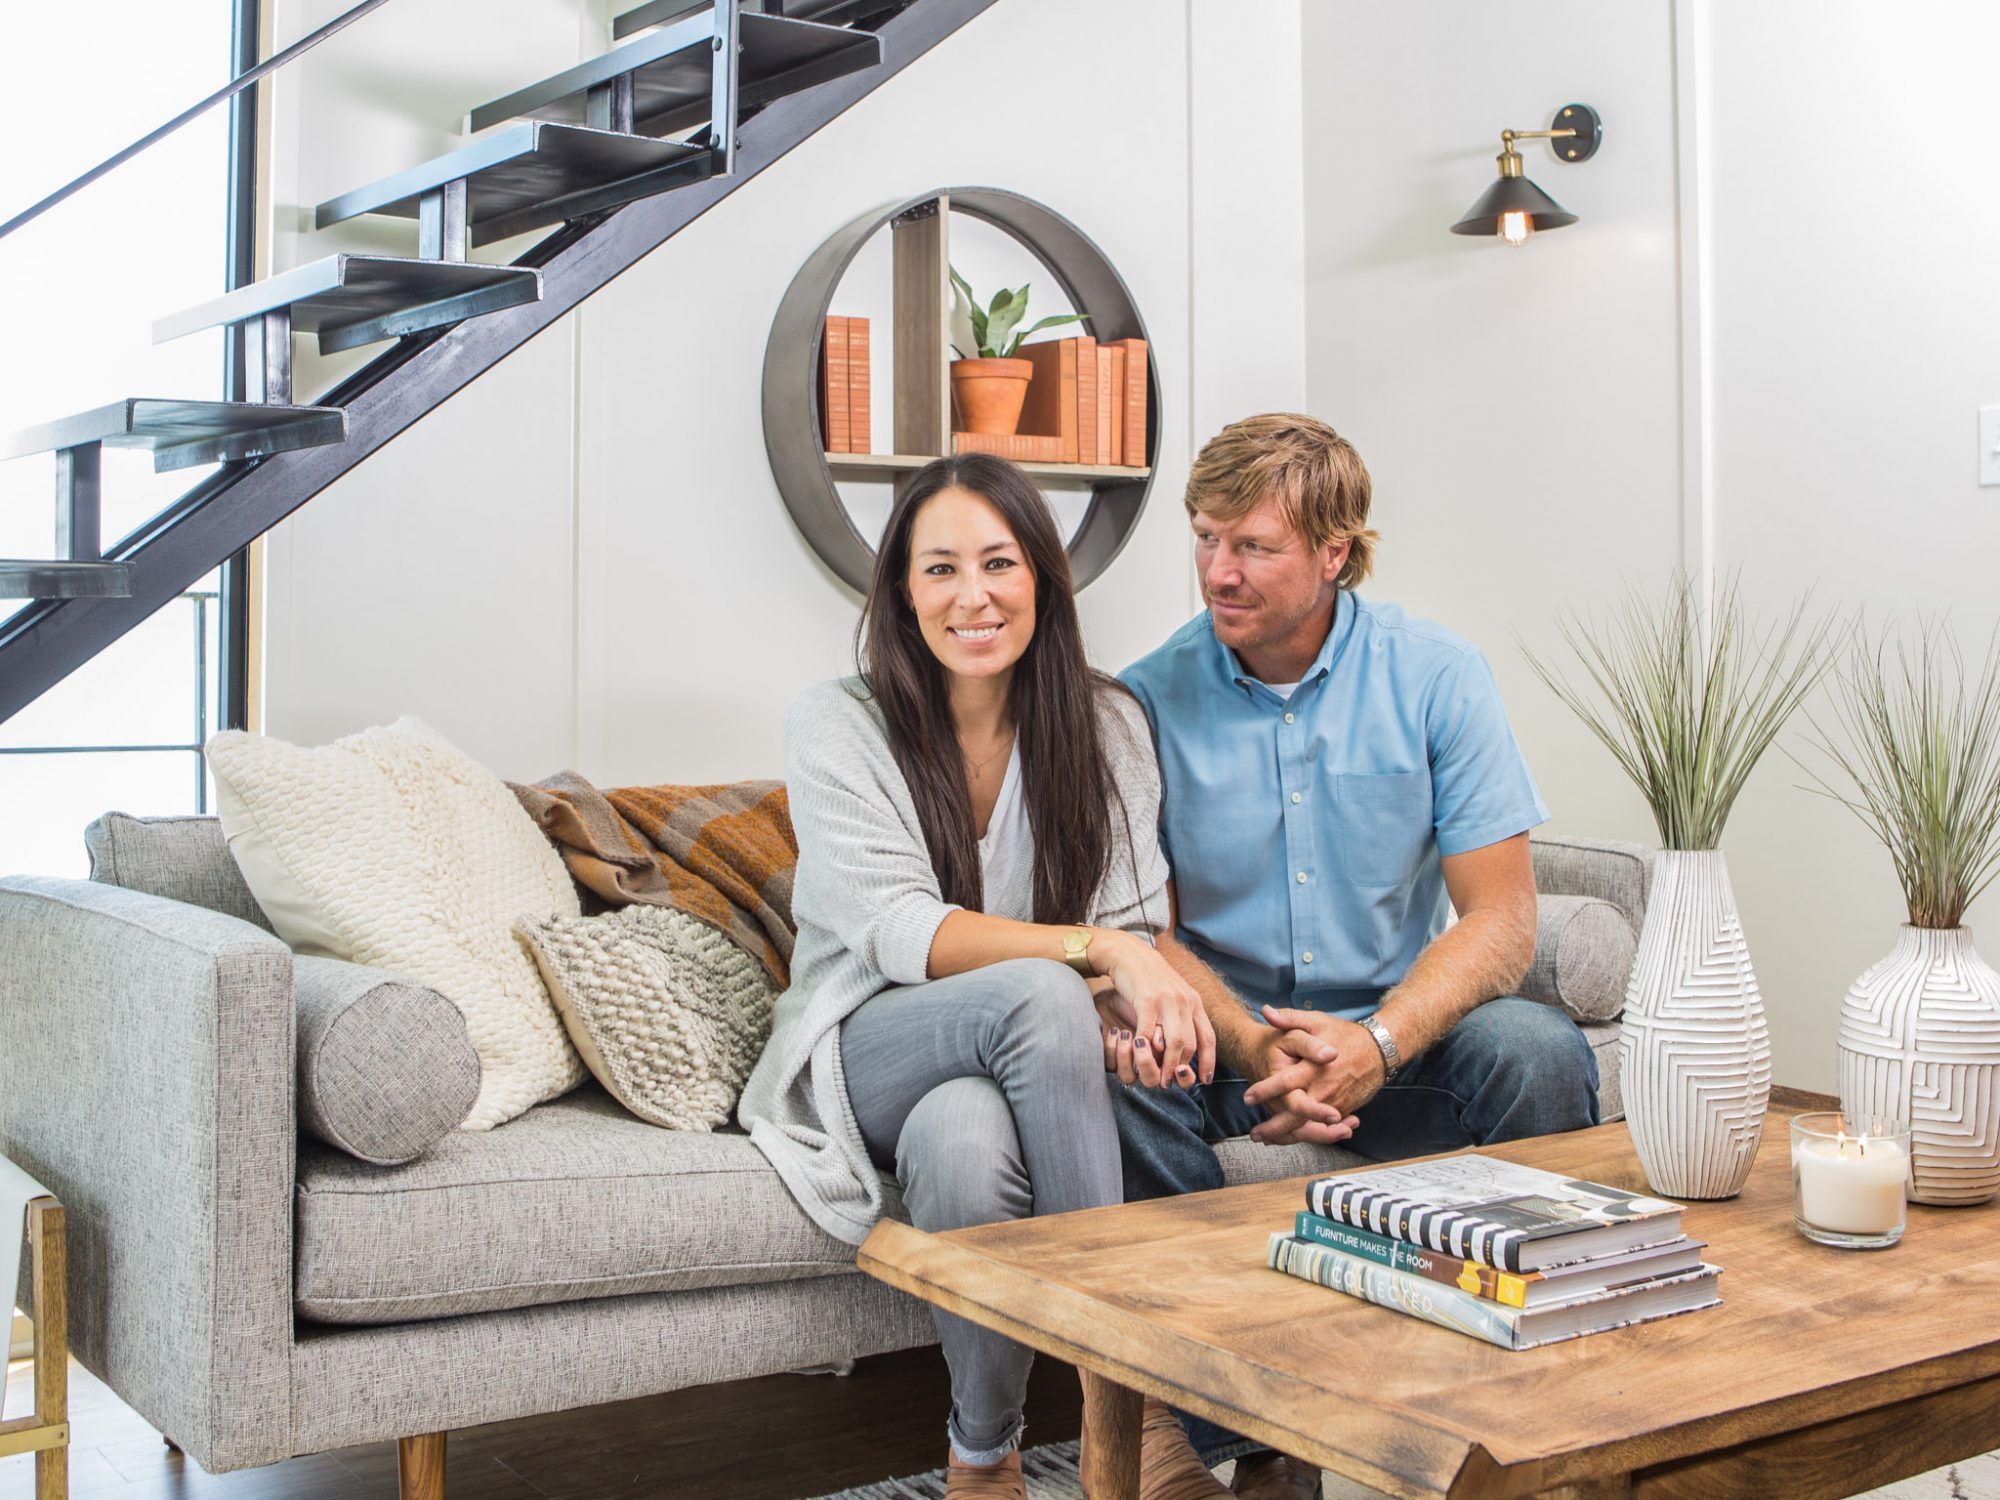 Joanna Gaines' Paint Line Is Now Available at a Store Near